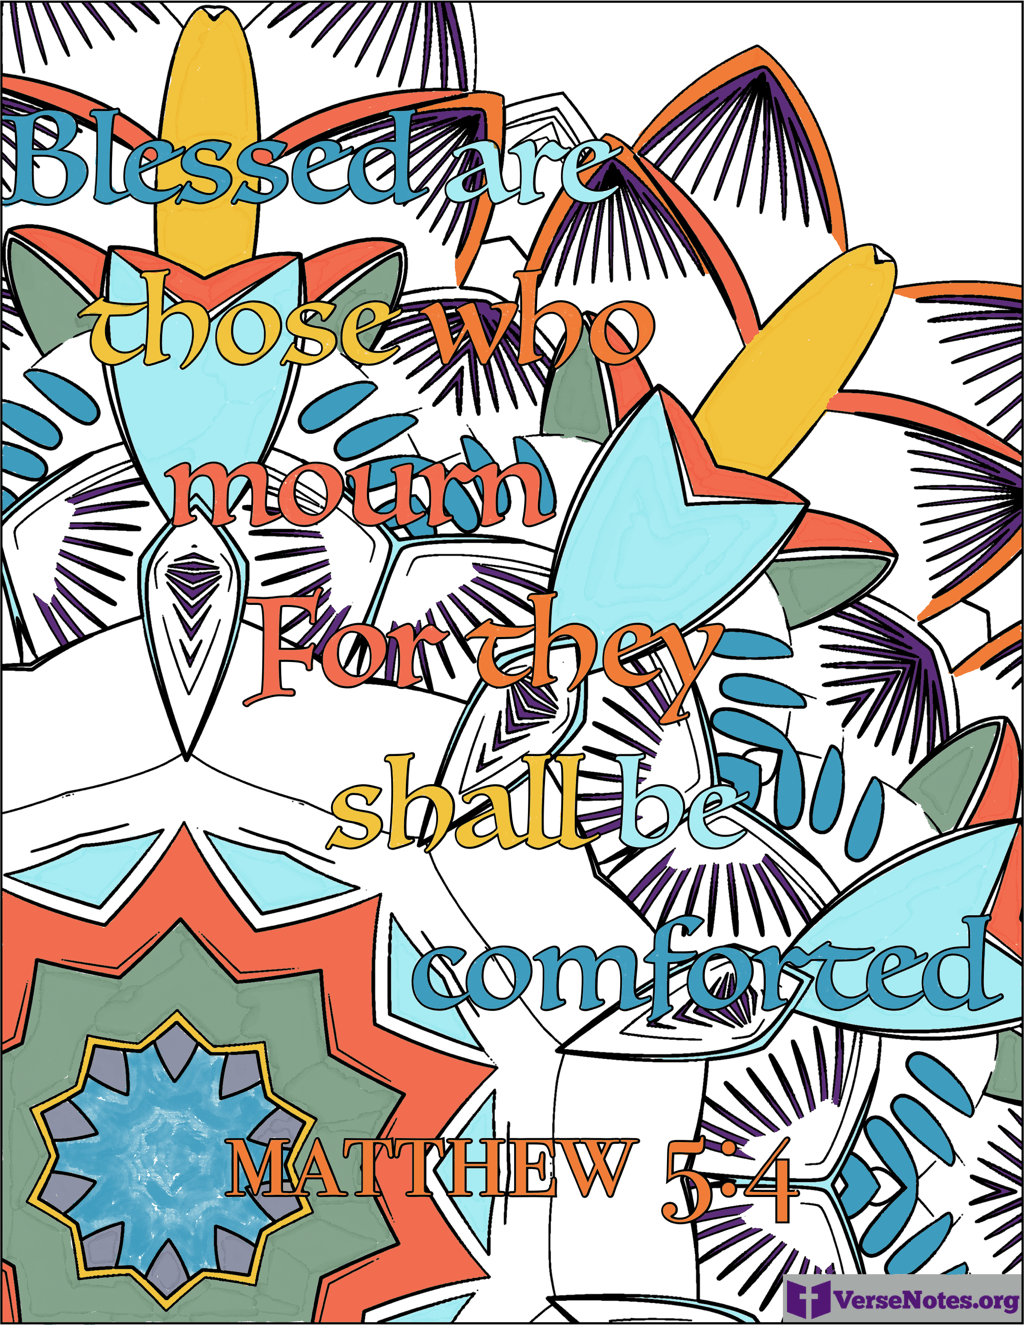 Finished coloring page for Matthew 5:4